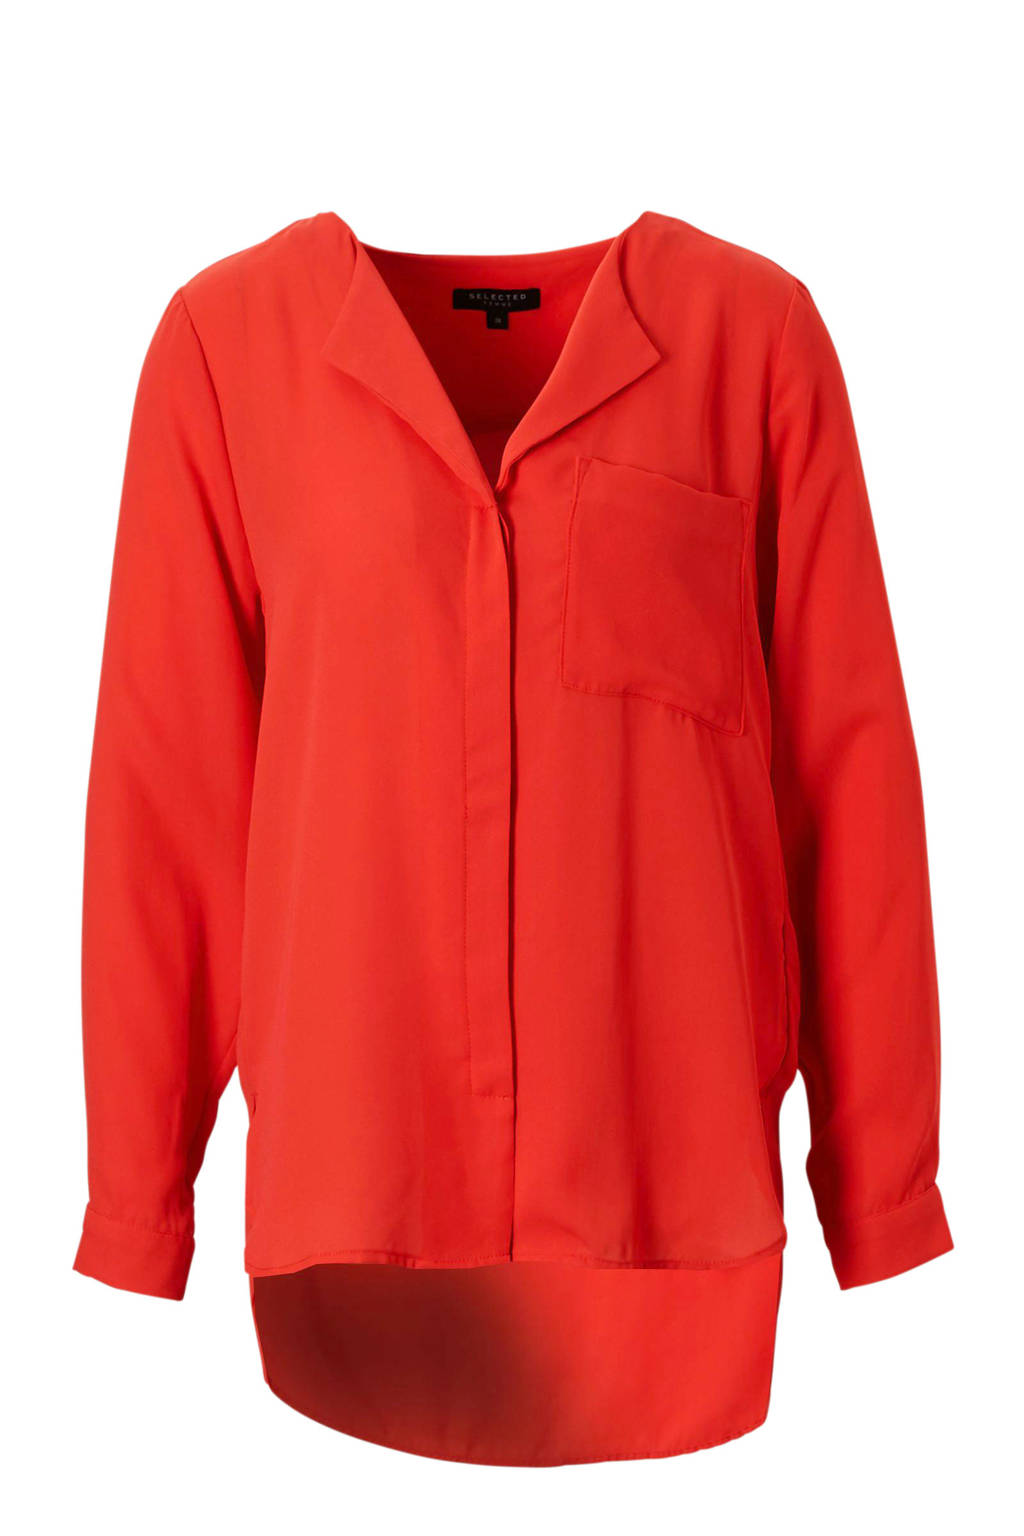 SELECTED FEMME blouse, Rood